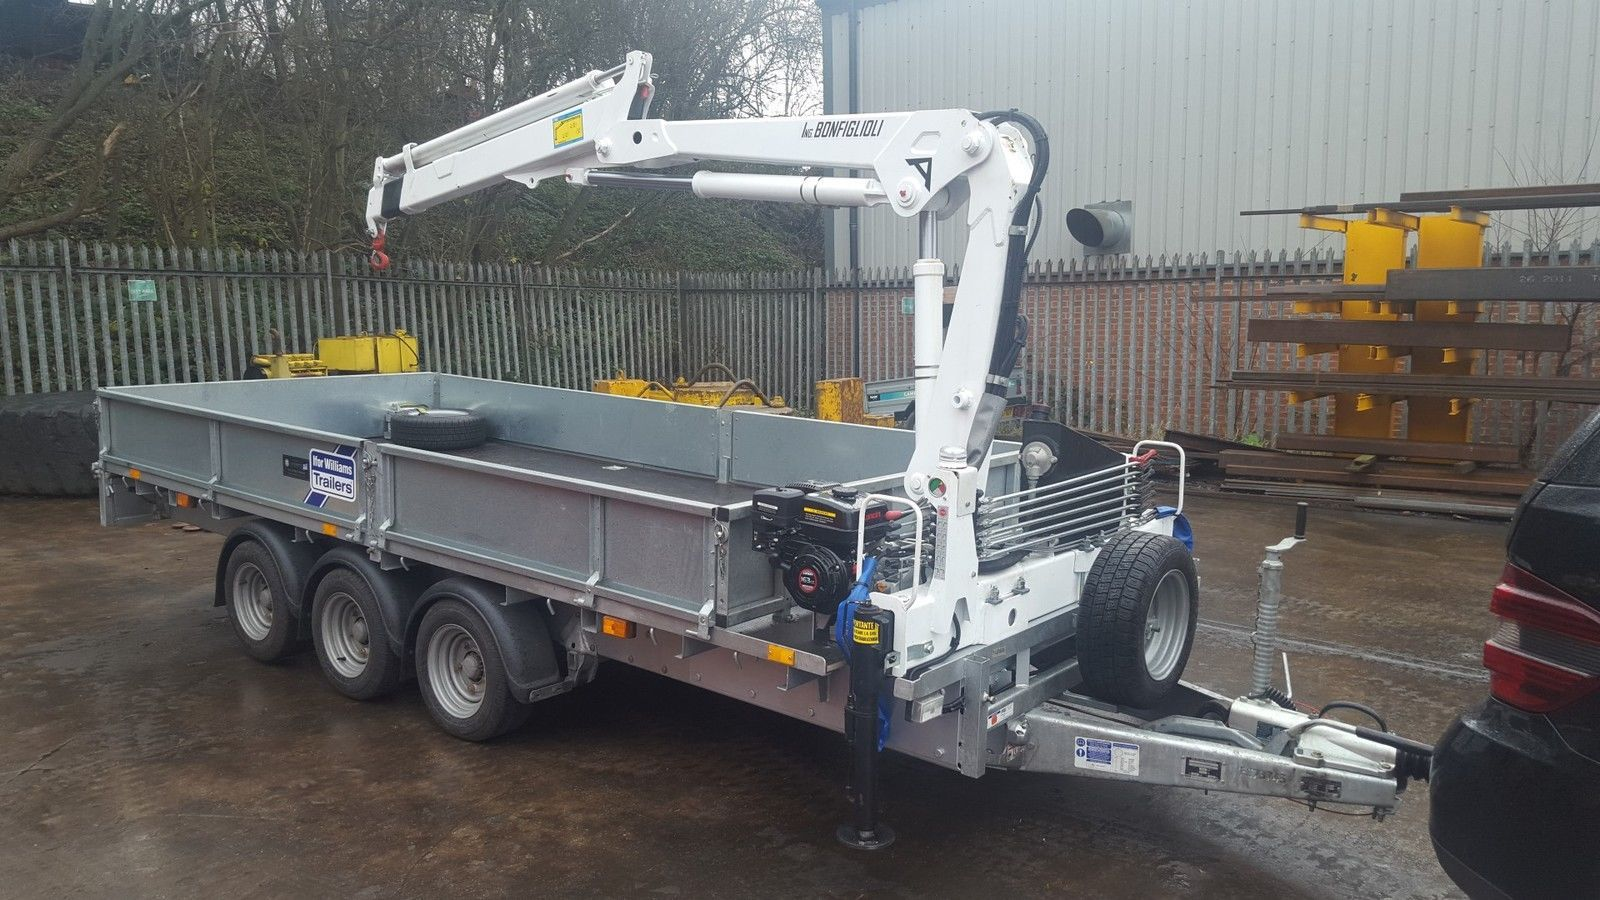 New Ifor Williams Trailer fitted with 23 t/m Crane / Hiab